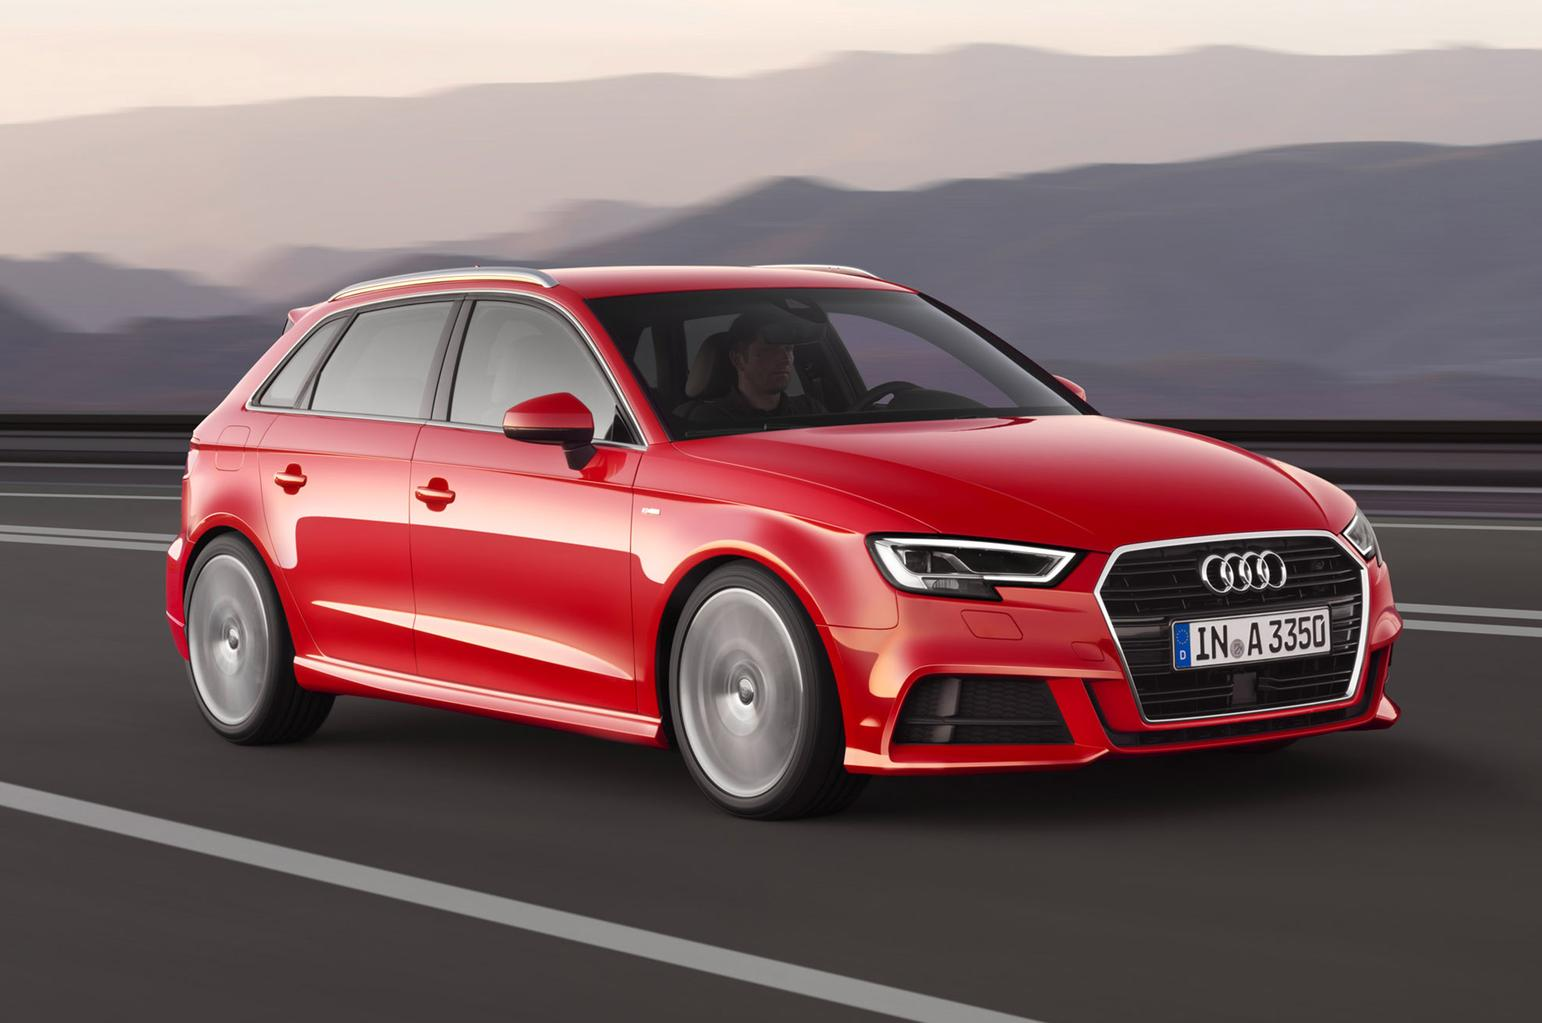 2016 Audi A3 facelift revealed